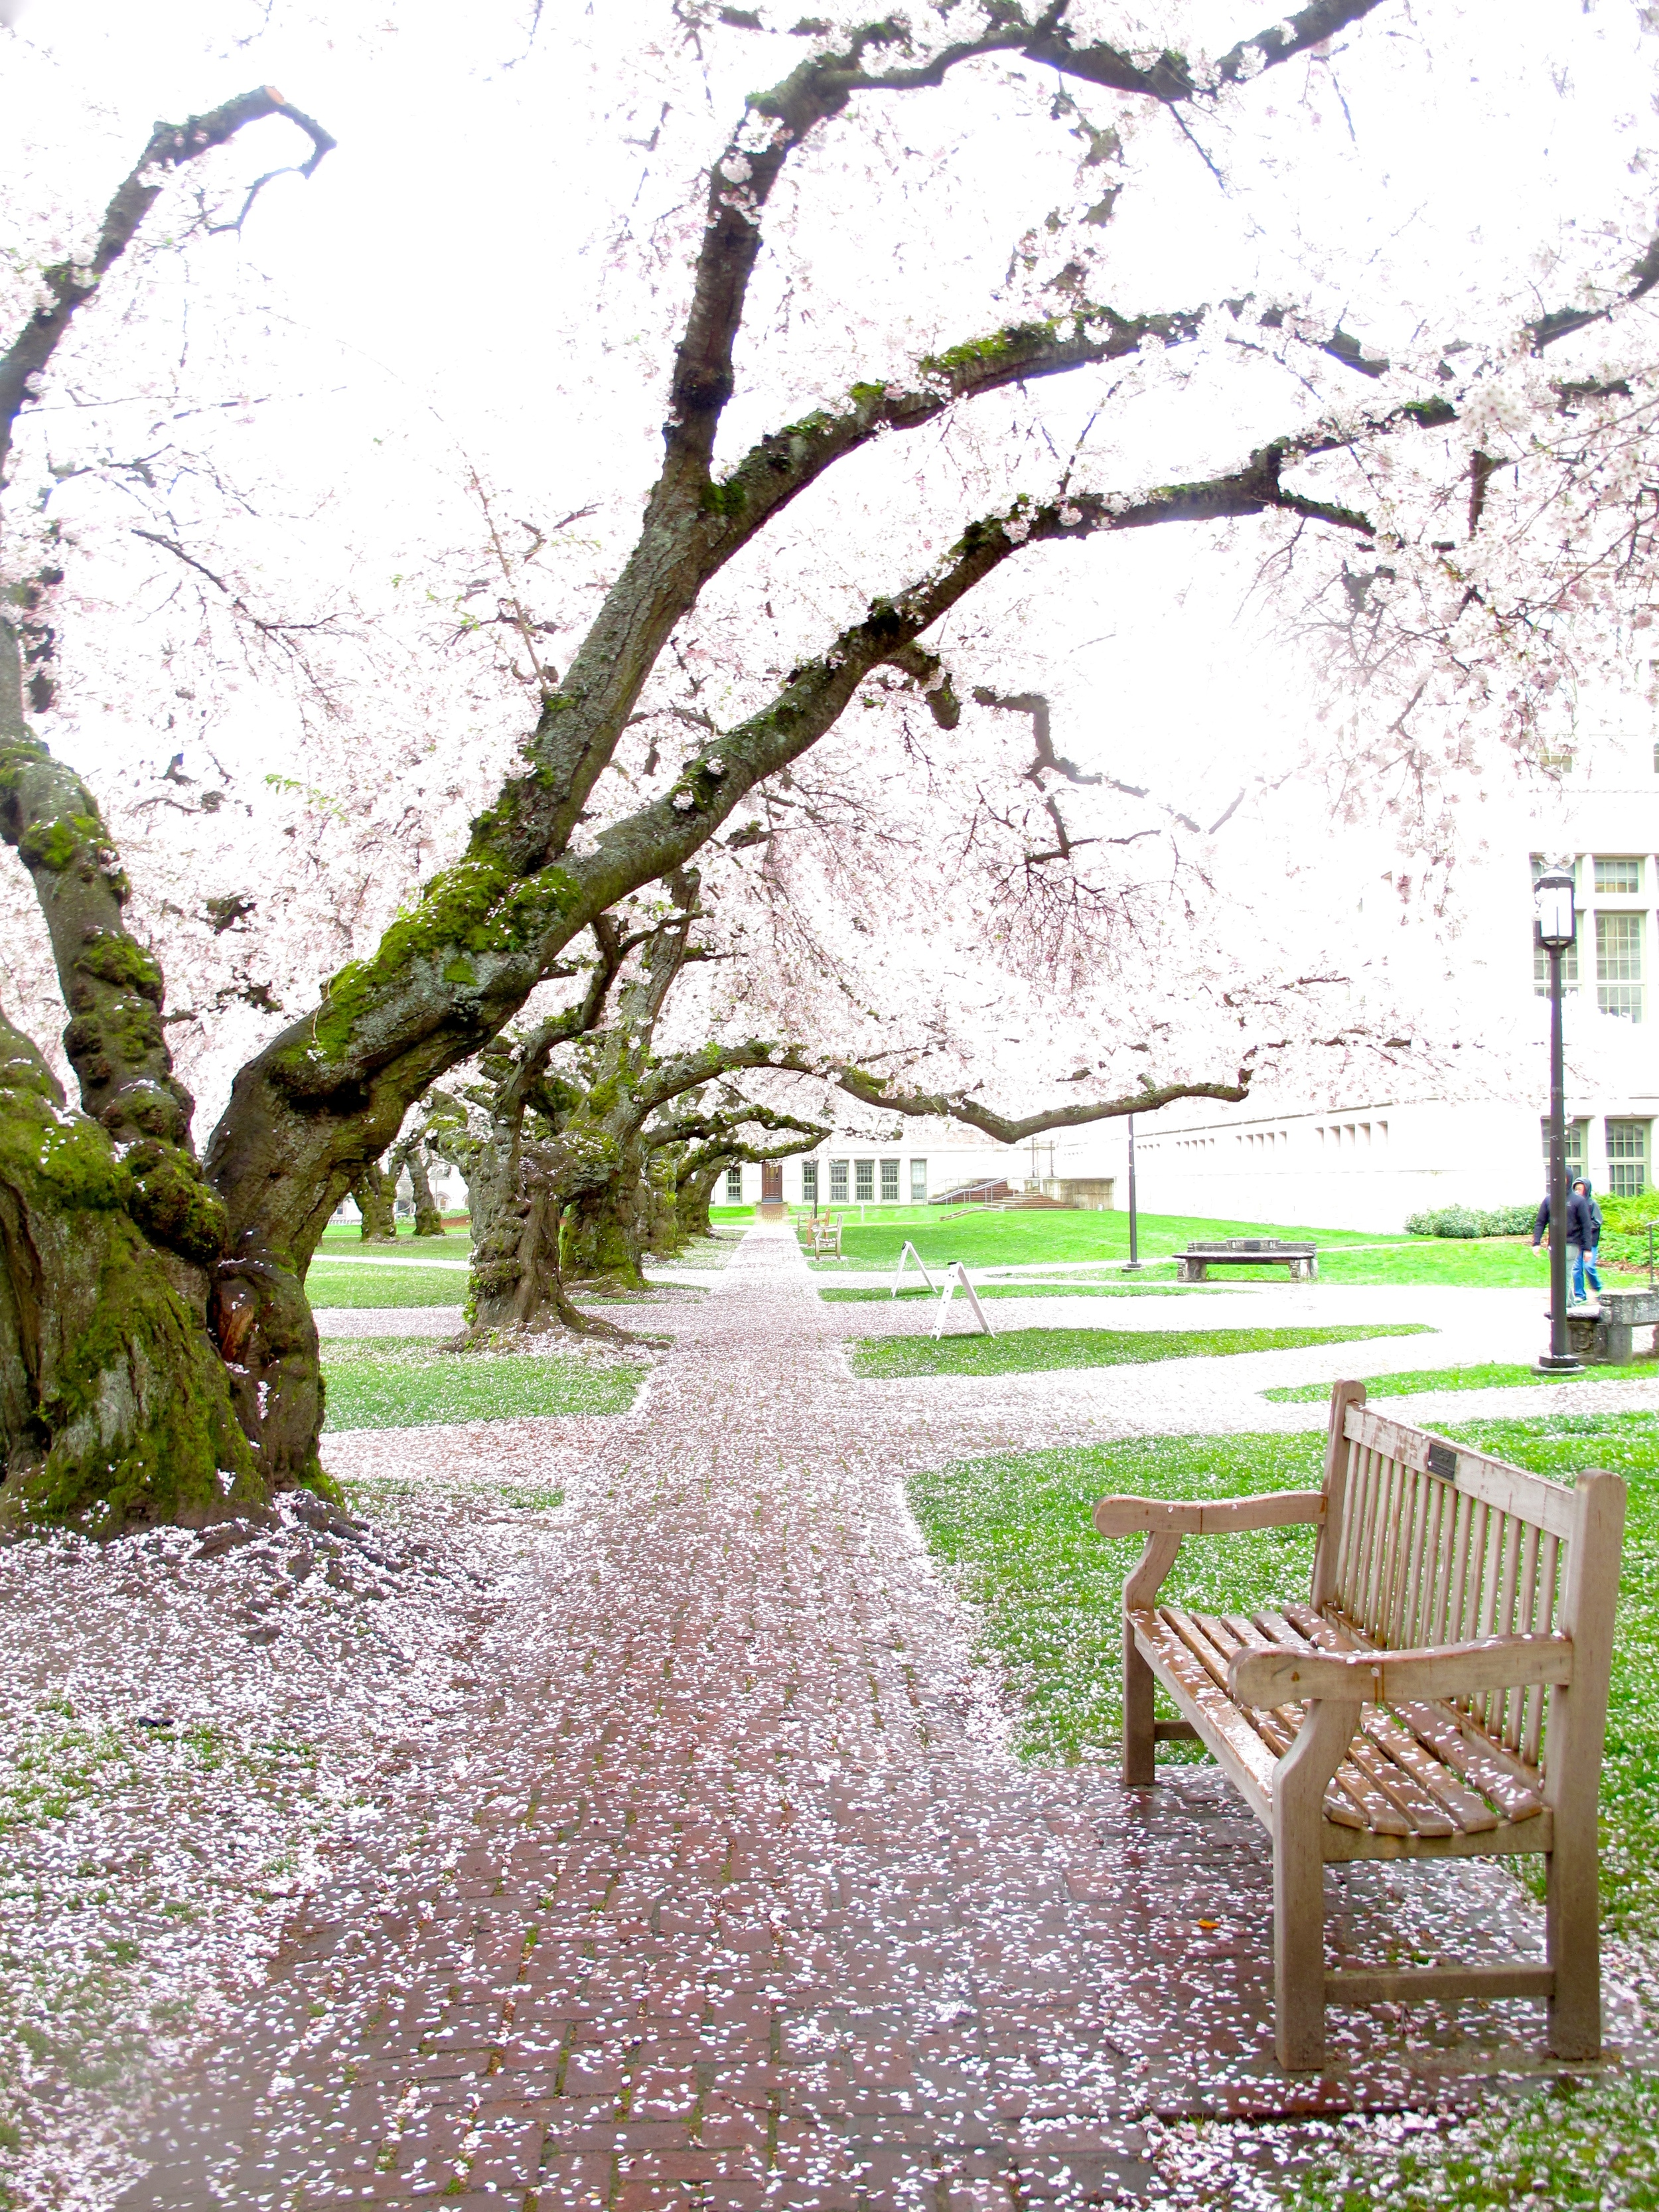 Cherry blossoms on a lane with benches, at the University of Washington